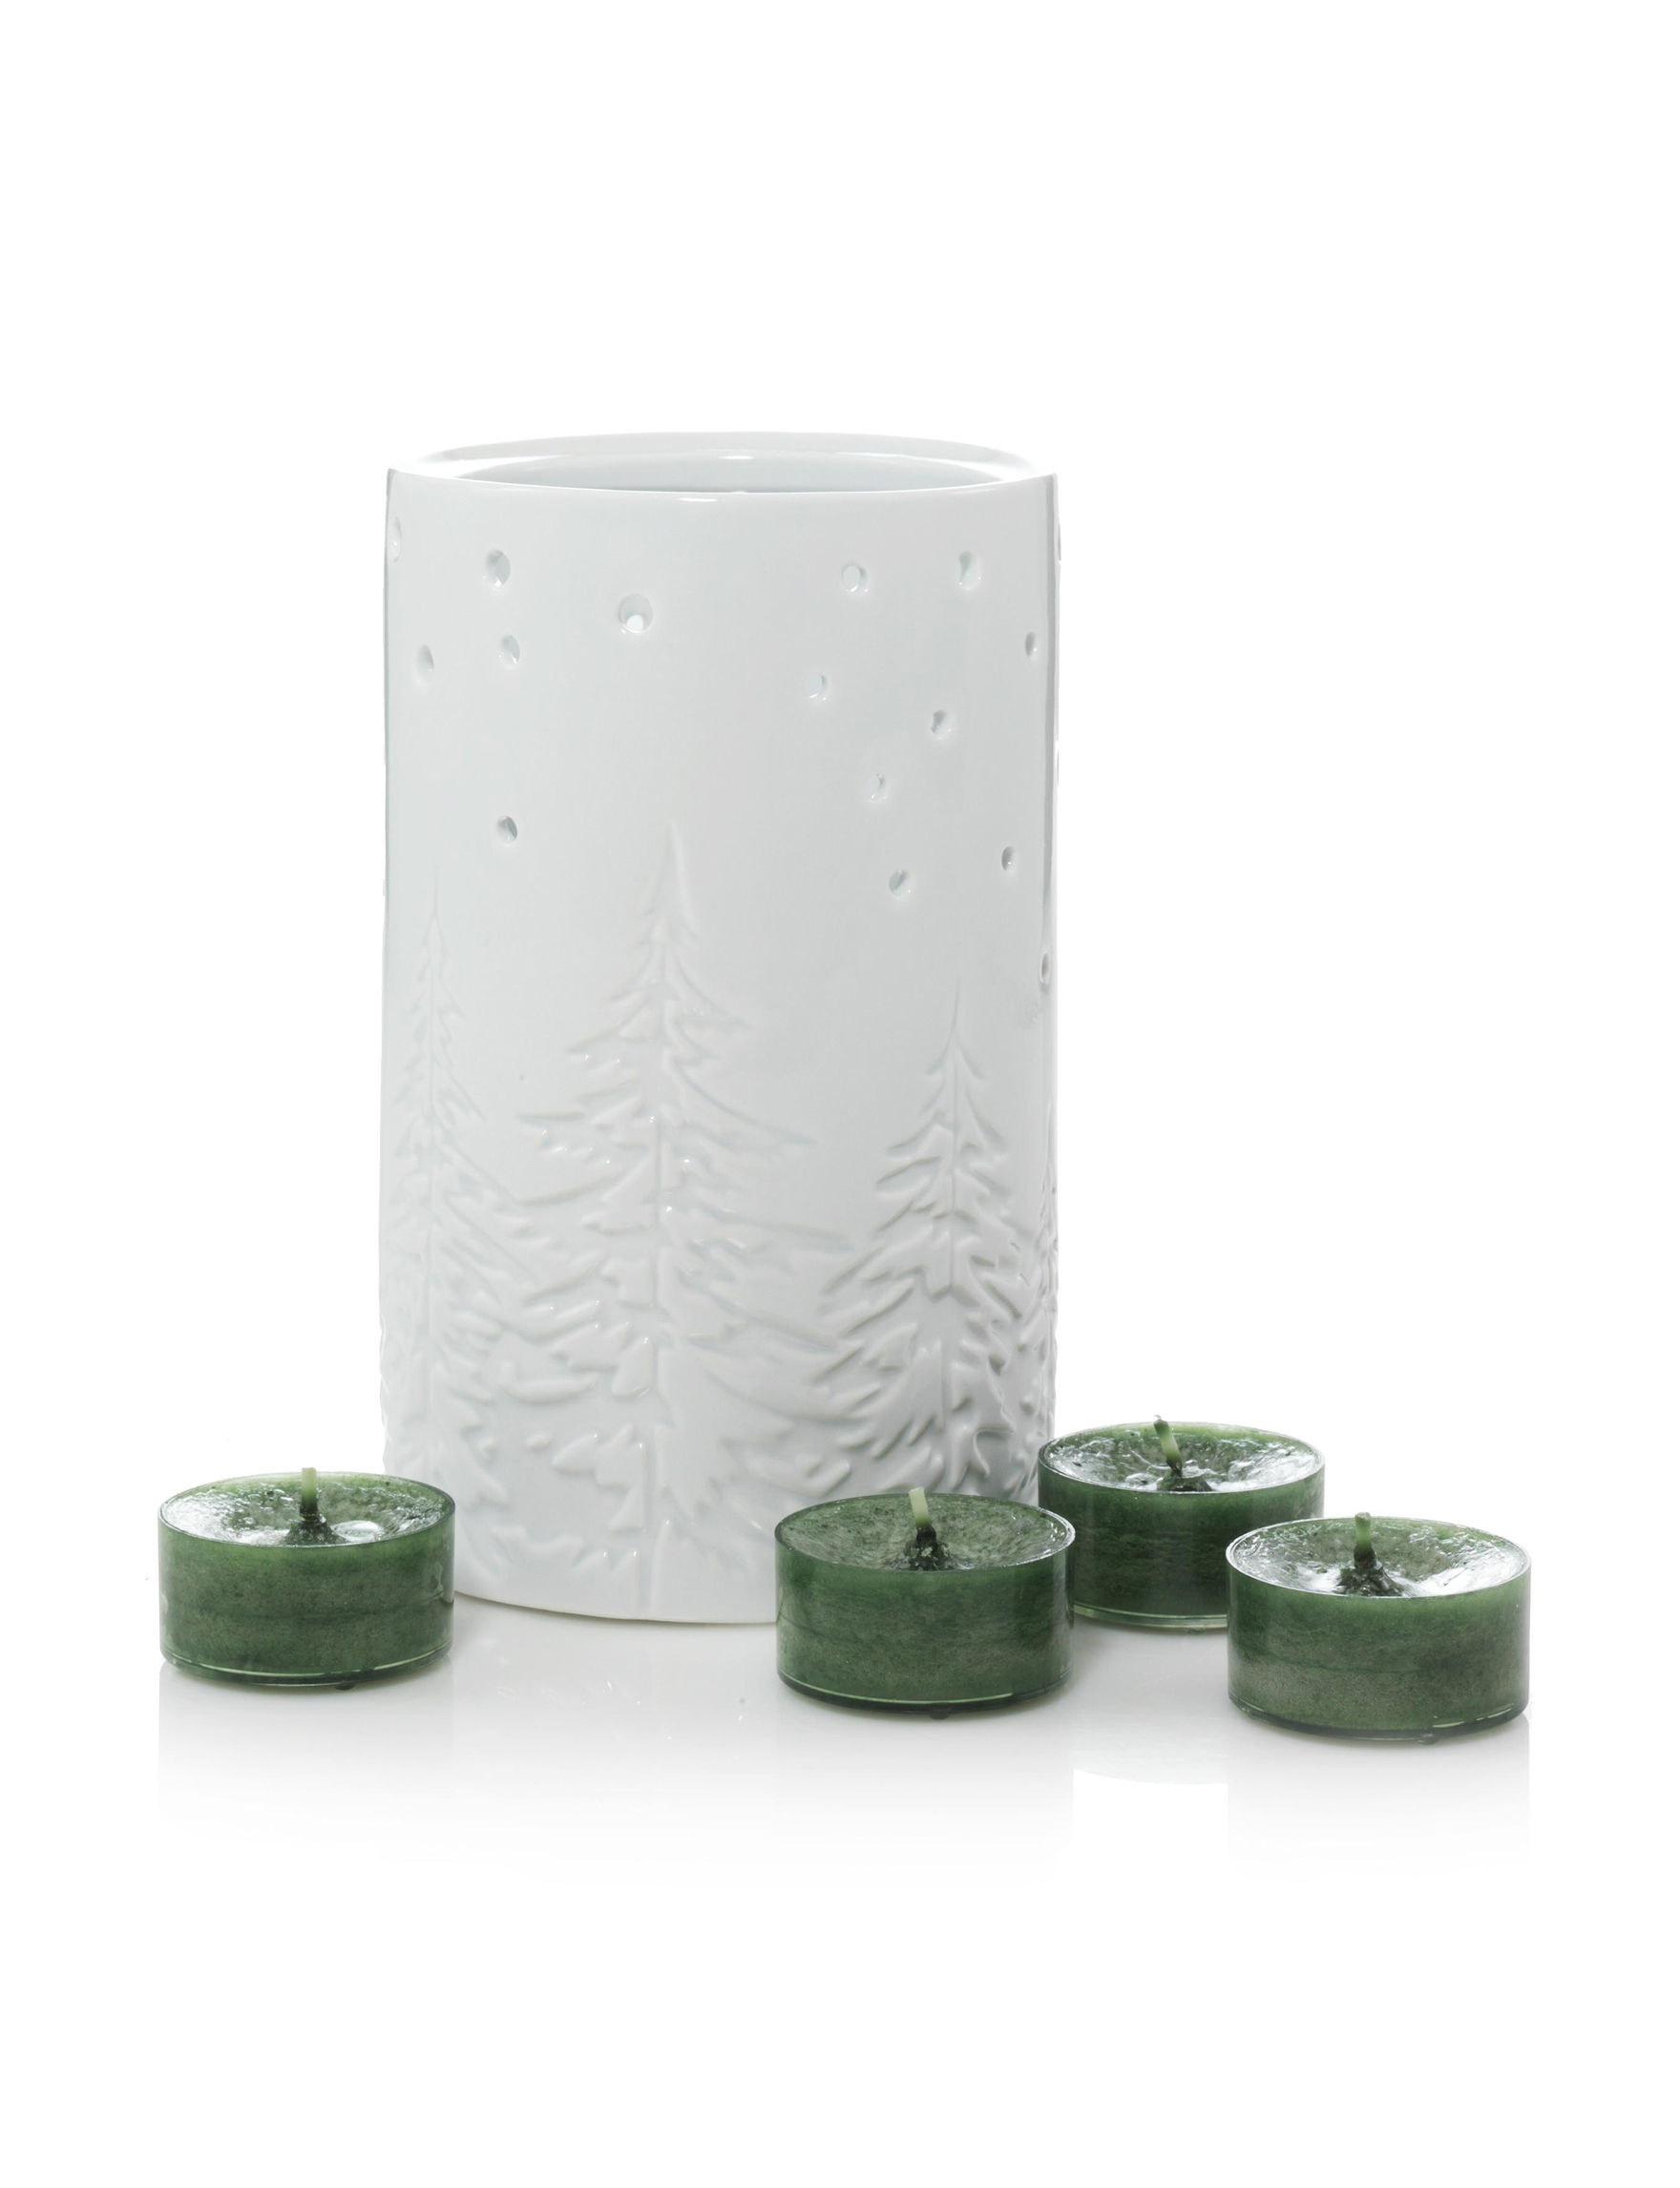 Yankee Candle White Candle Holders Candles & Diffusers